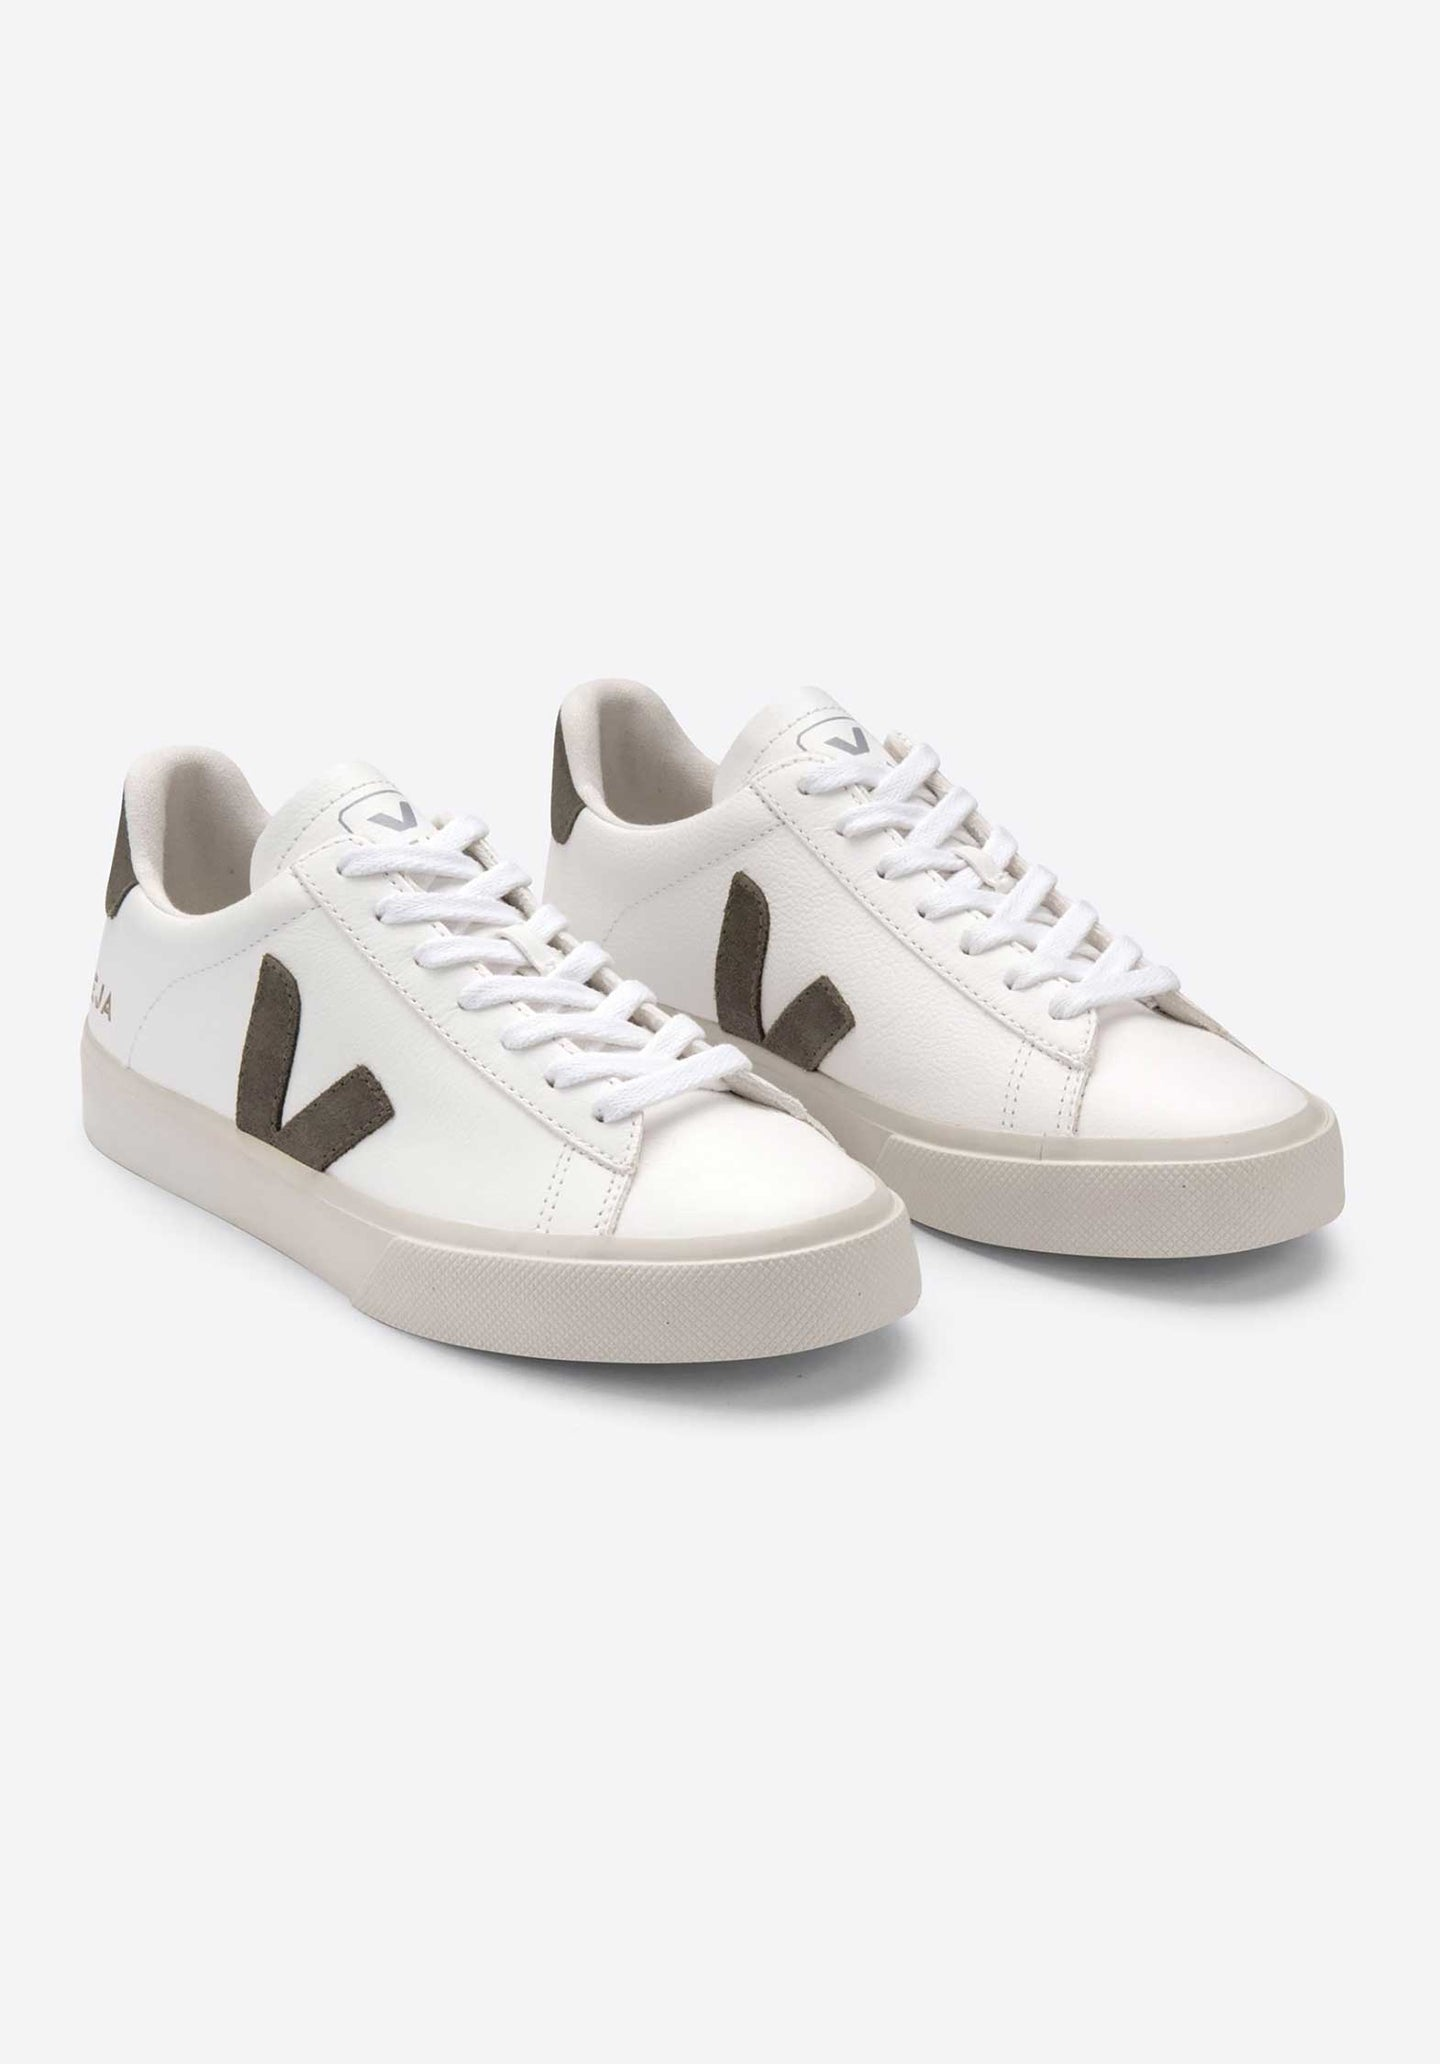 Campo Chromefree Leather Lace Up Sneakers White-Kaki